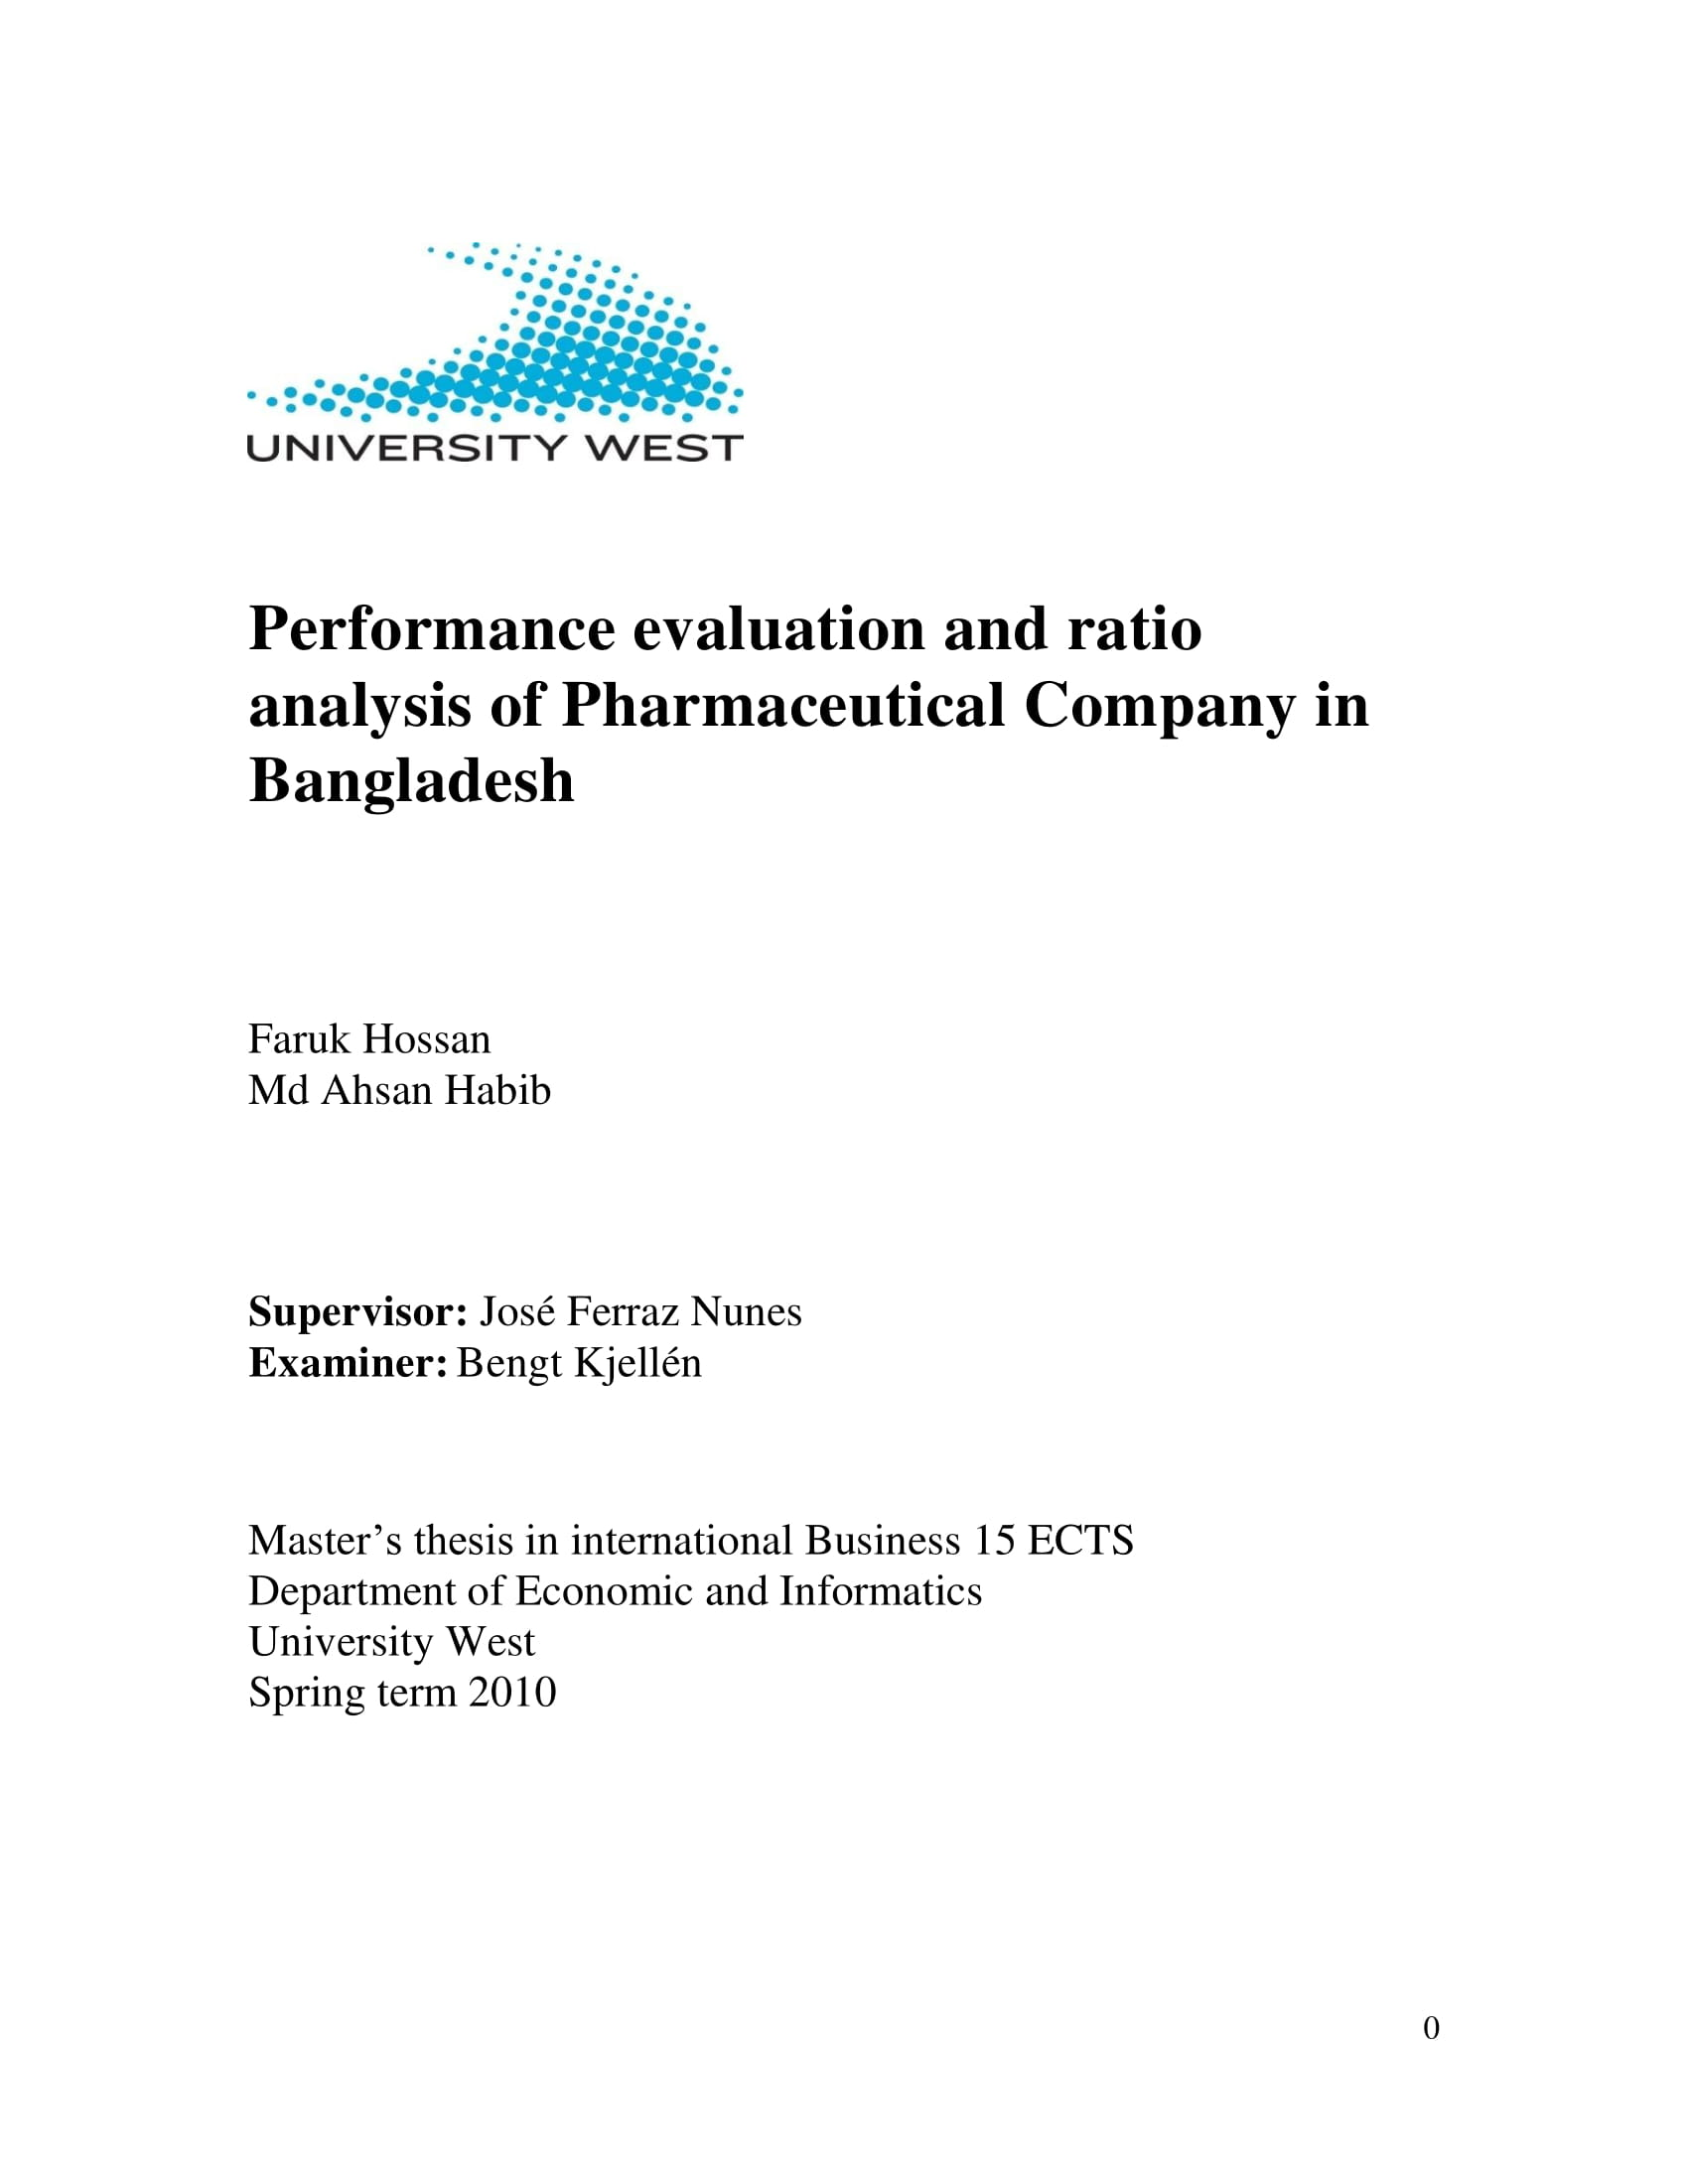 performance evaluation and ratio analysis report example 01